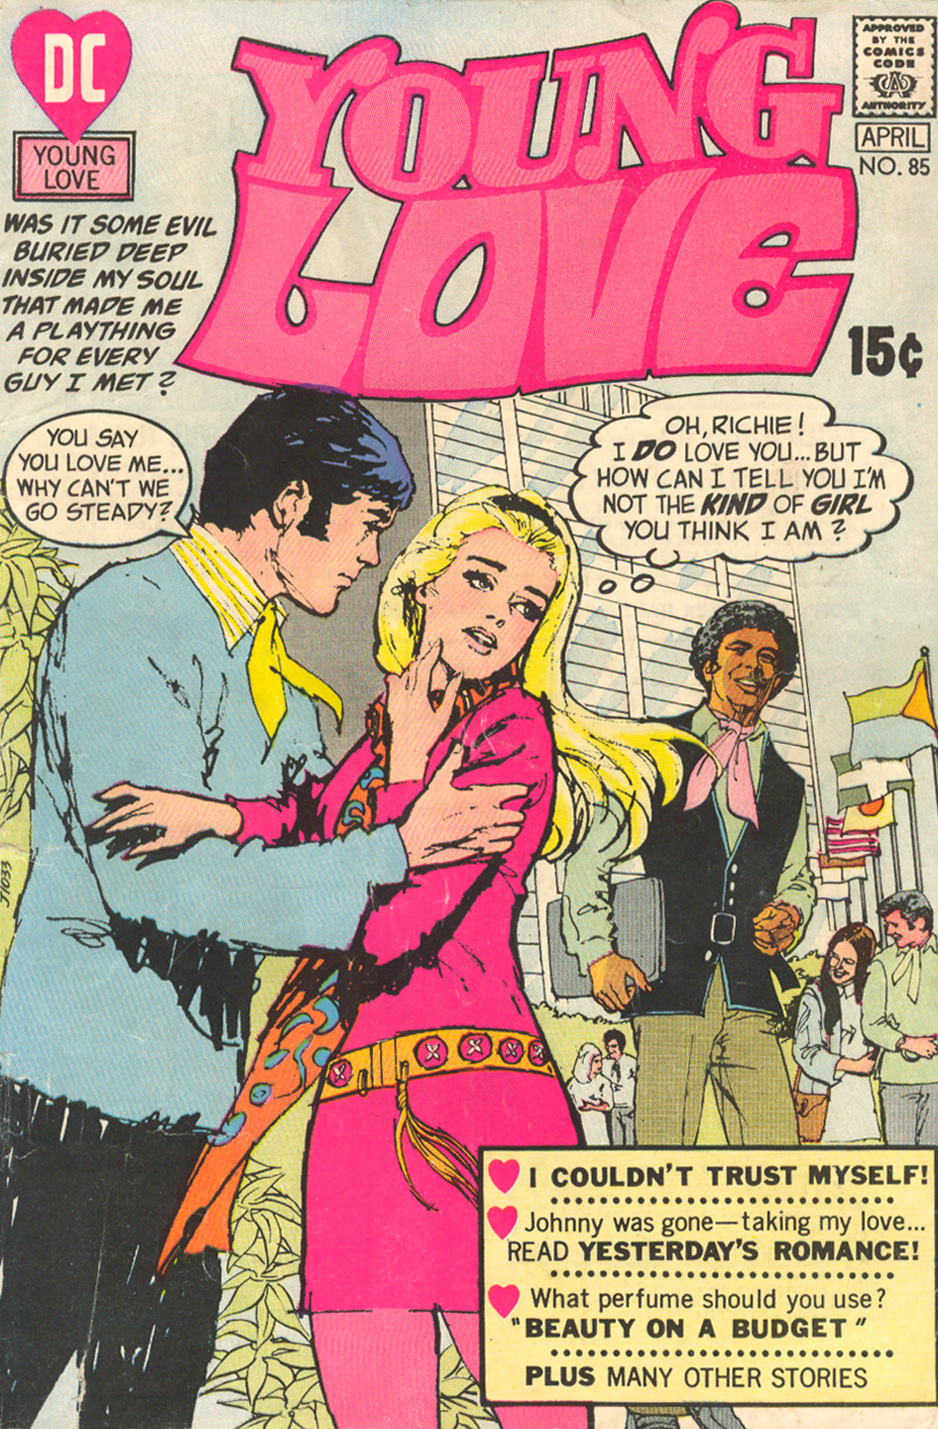 Young Love  #85 (March/April 1971) Cover by Tony DeZuniga